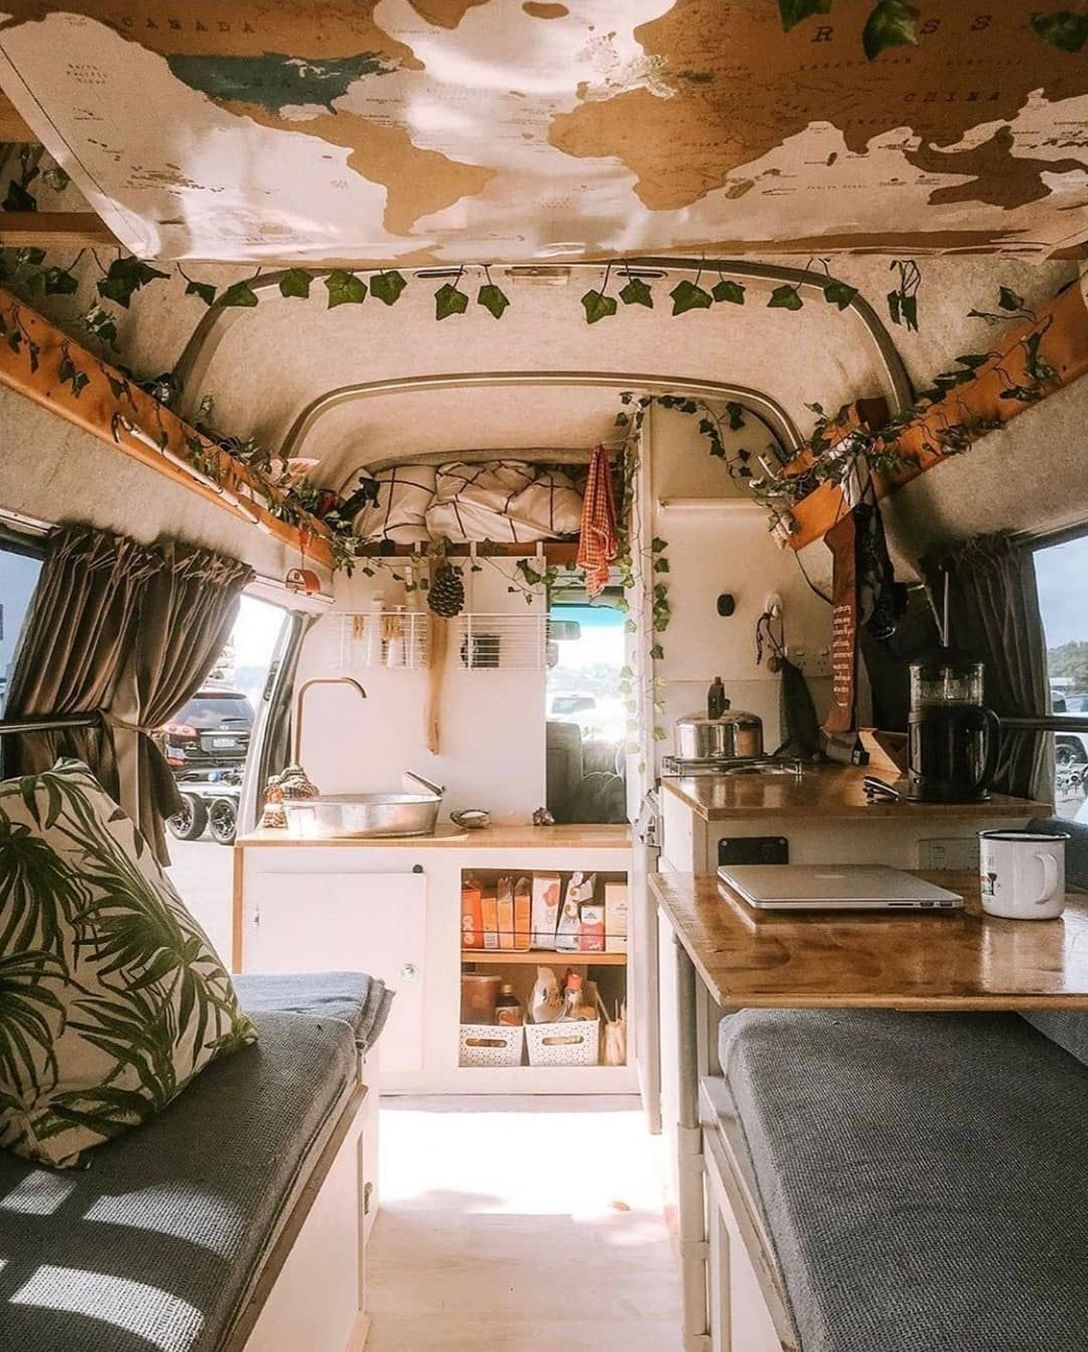 Photo of Inspiring 21 Ideas For Your Camper Interior Design outdoordecorsm.co… There ar…